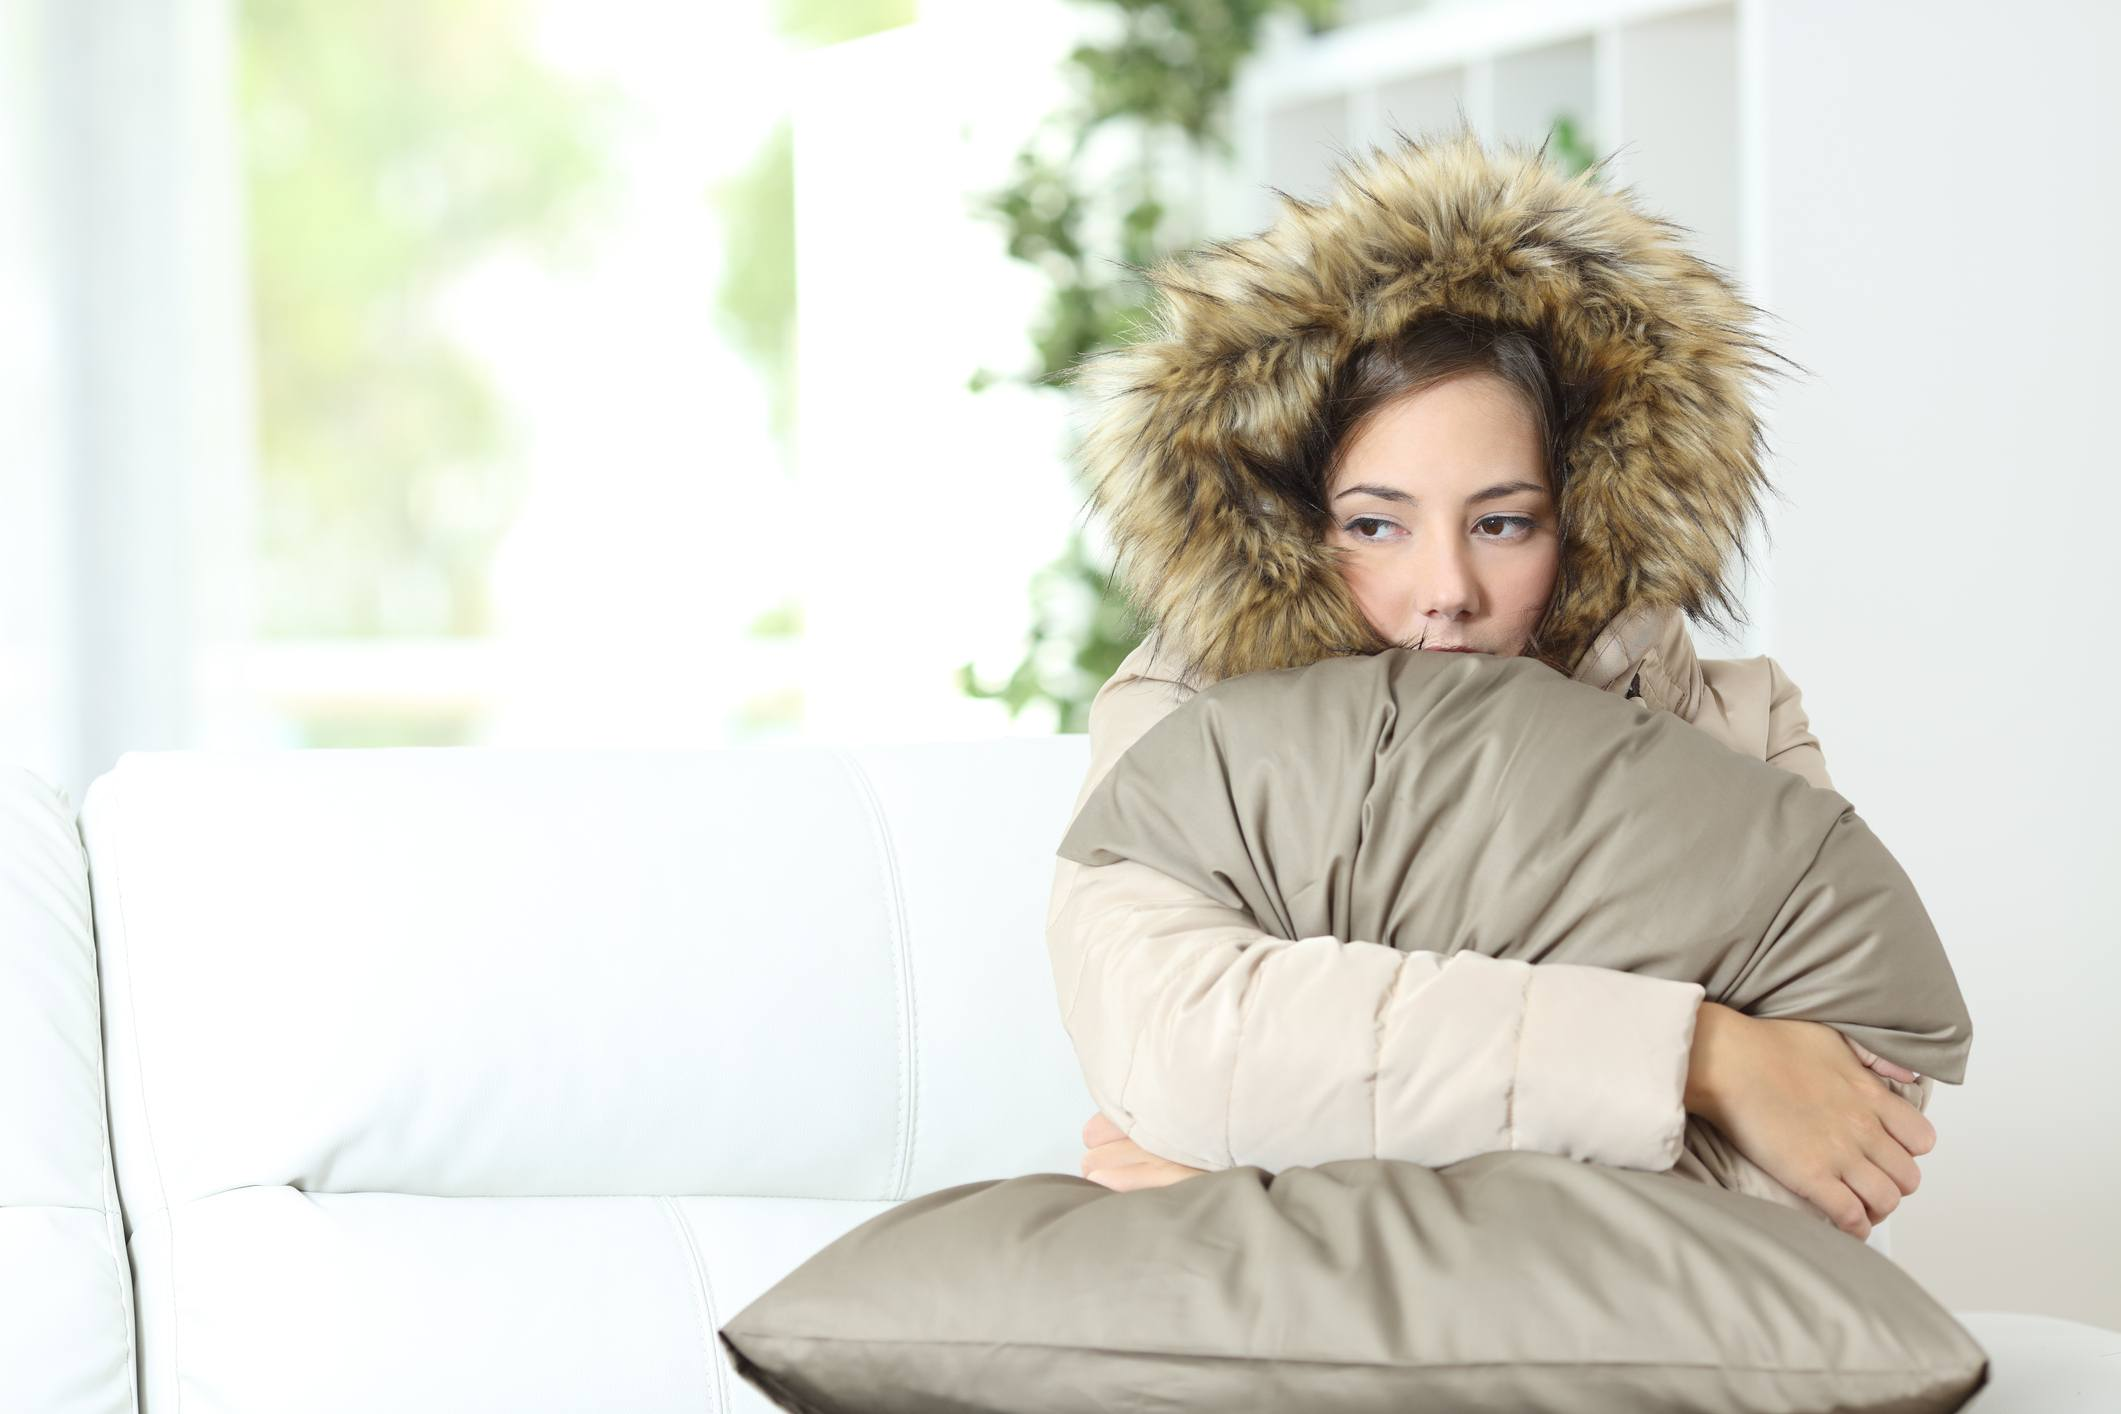 Cold Woman warmly clothed in a cold home